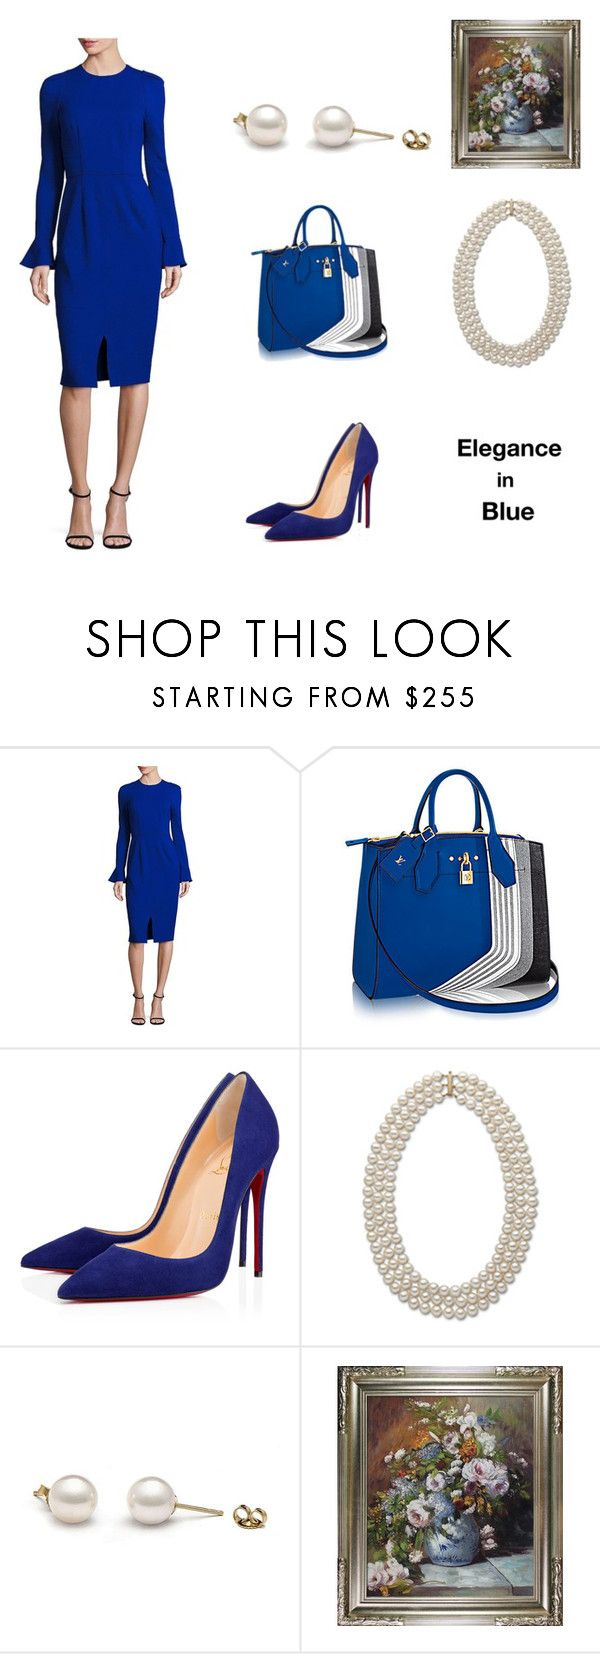 """""""Elegance in Blue (contest)"""" by scolab ❤ liked on Polyvore featuring David Meister and Christian Louboutin"""